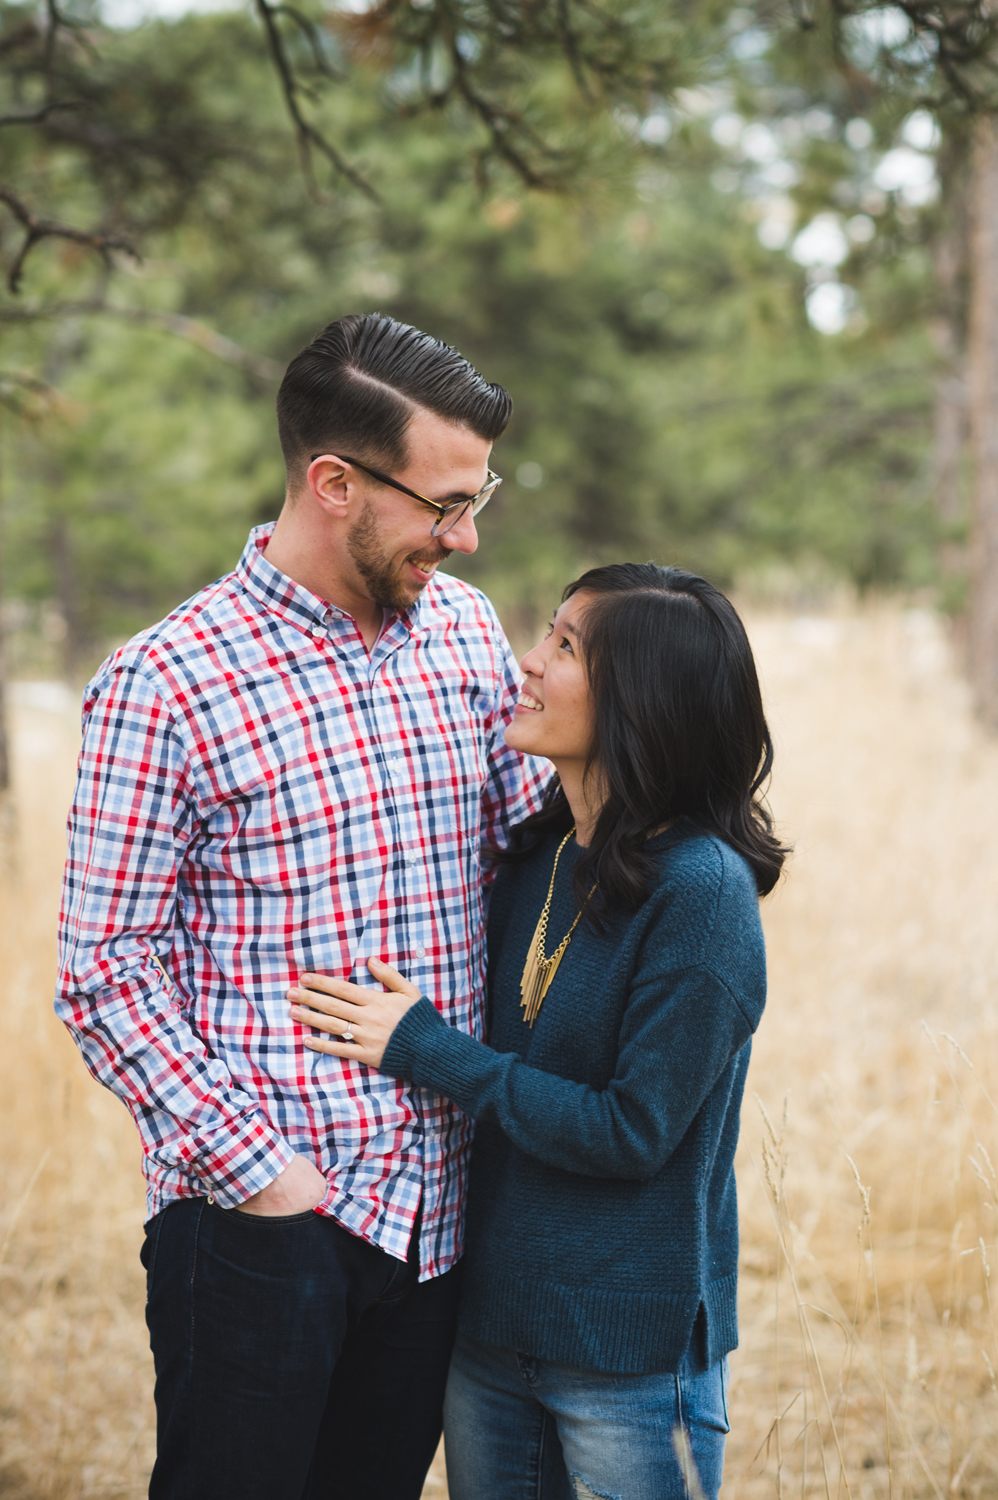 TiffanyandMark_Engaged_0029_squarespace.jpg